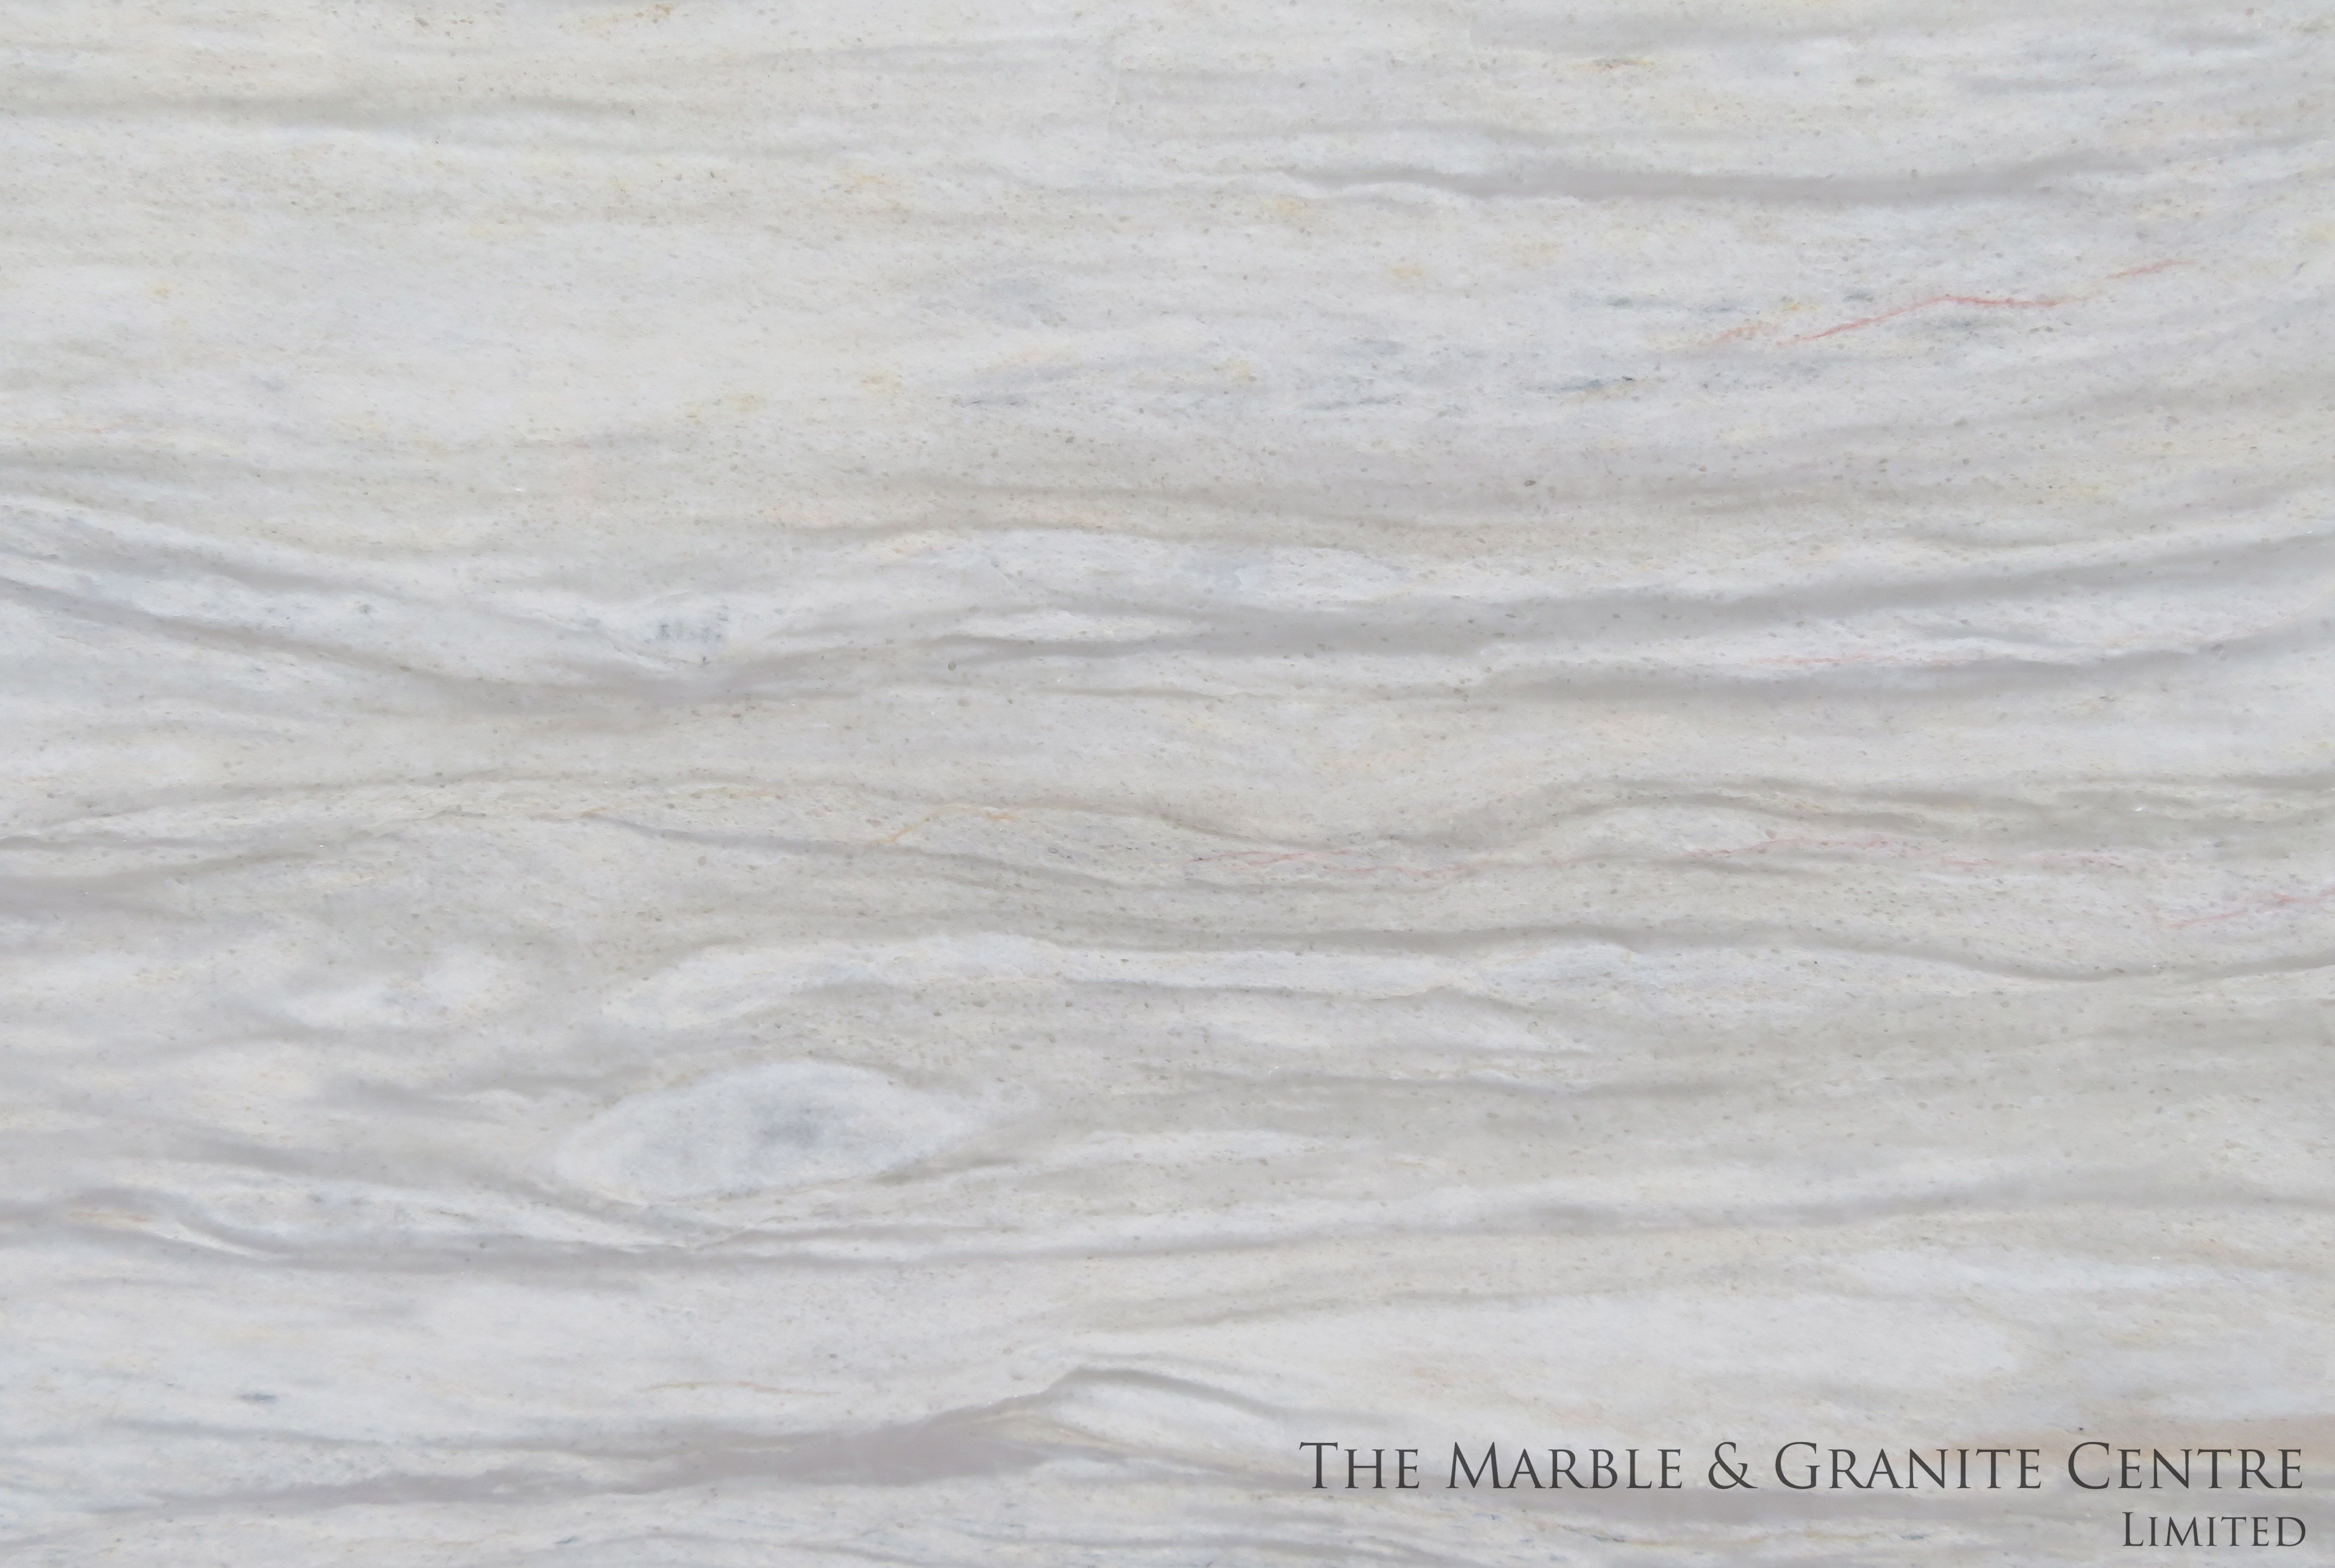 Rinser Naturstein Nestos Beige: Nestos Is A Popular Marble From Greece With Linear Markings. We Now Have Three Different Colour Variations Available From Stock: Beige, White And …